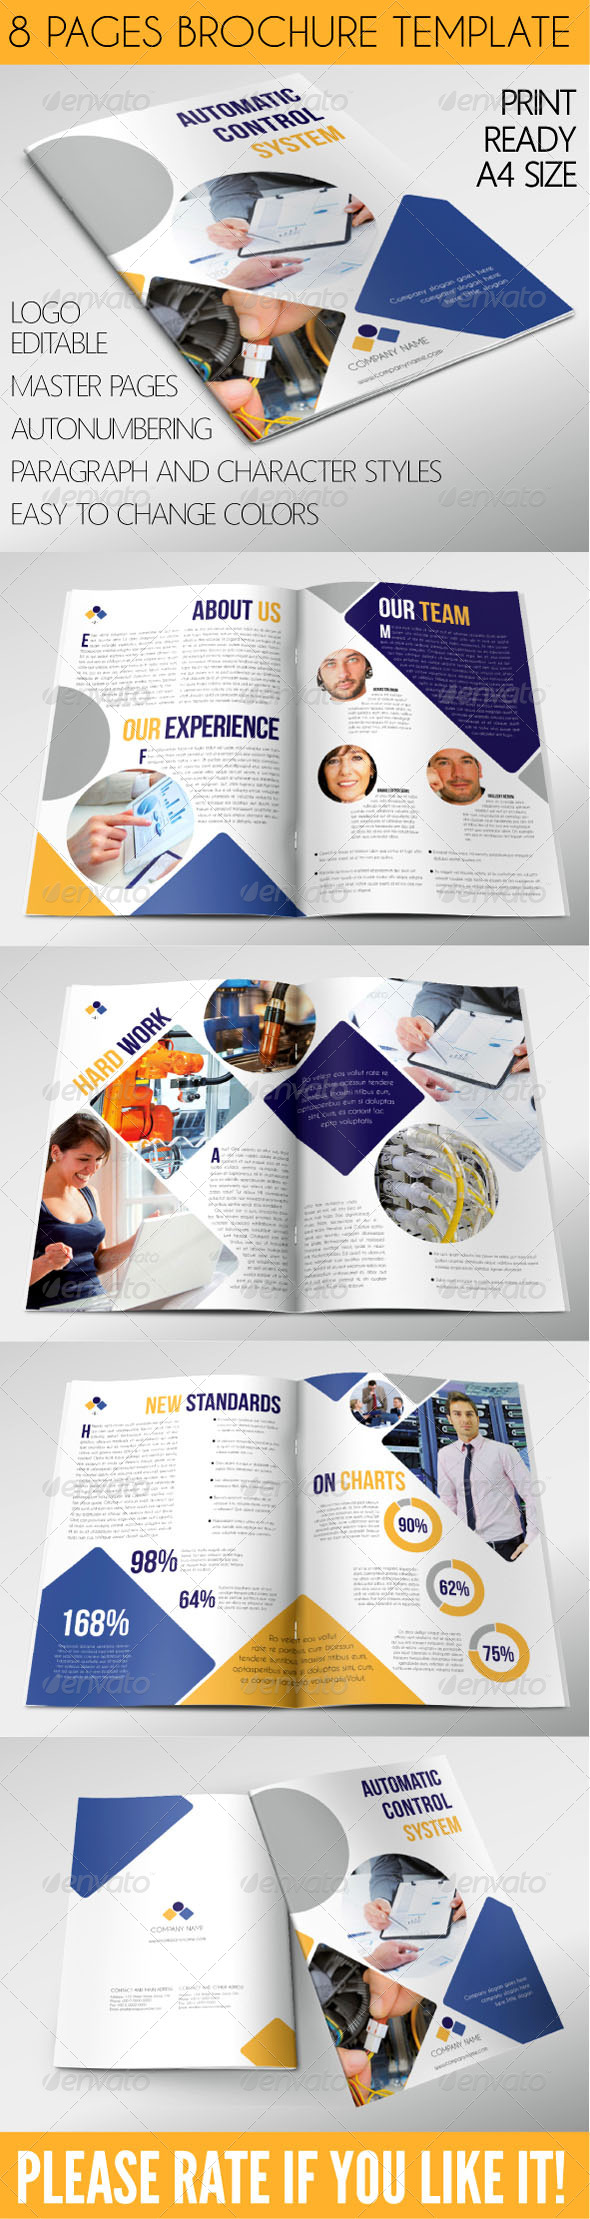 GraphicRiver Corporate Brochure 8 Pages A4 7459837